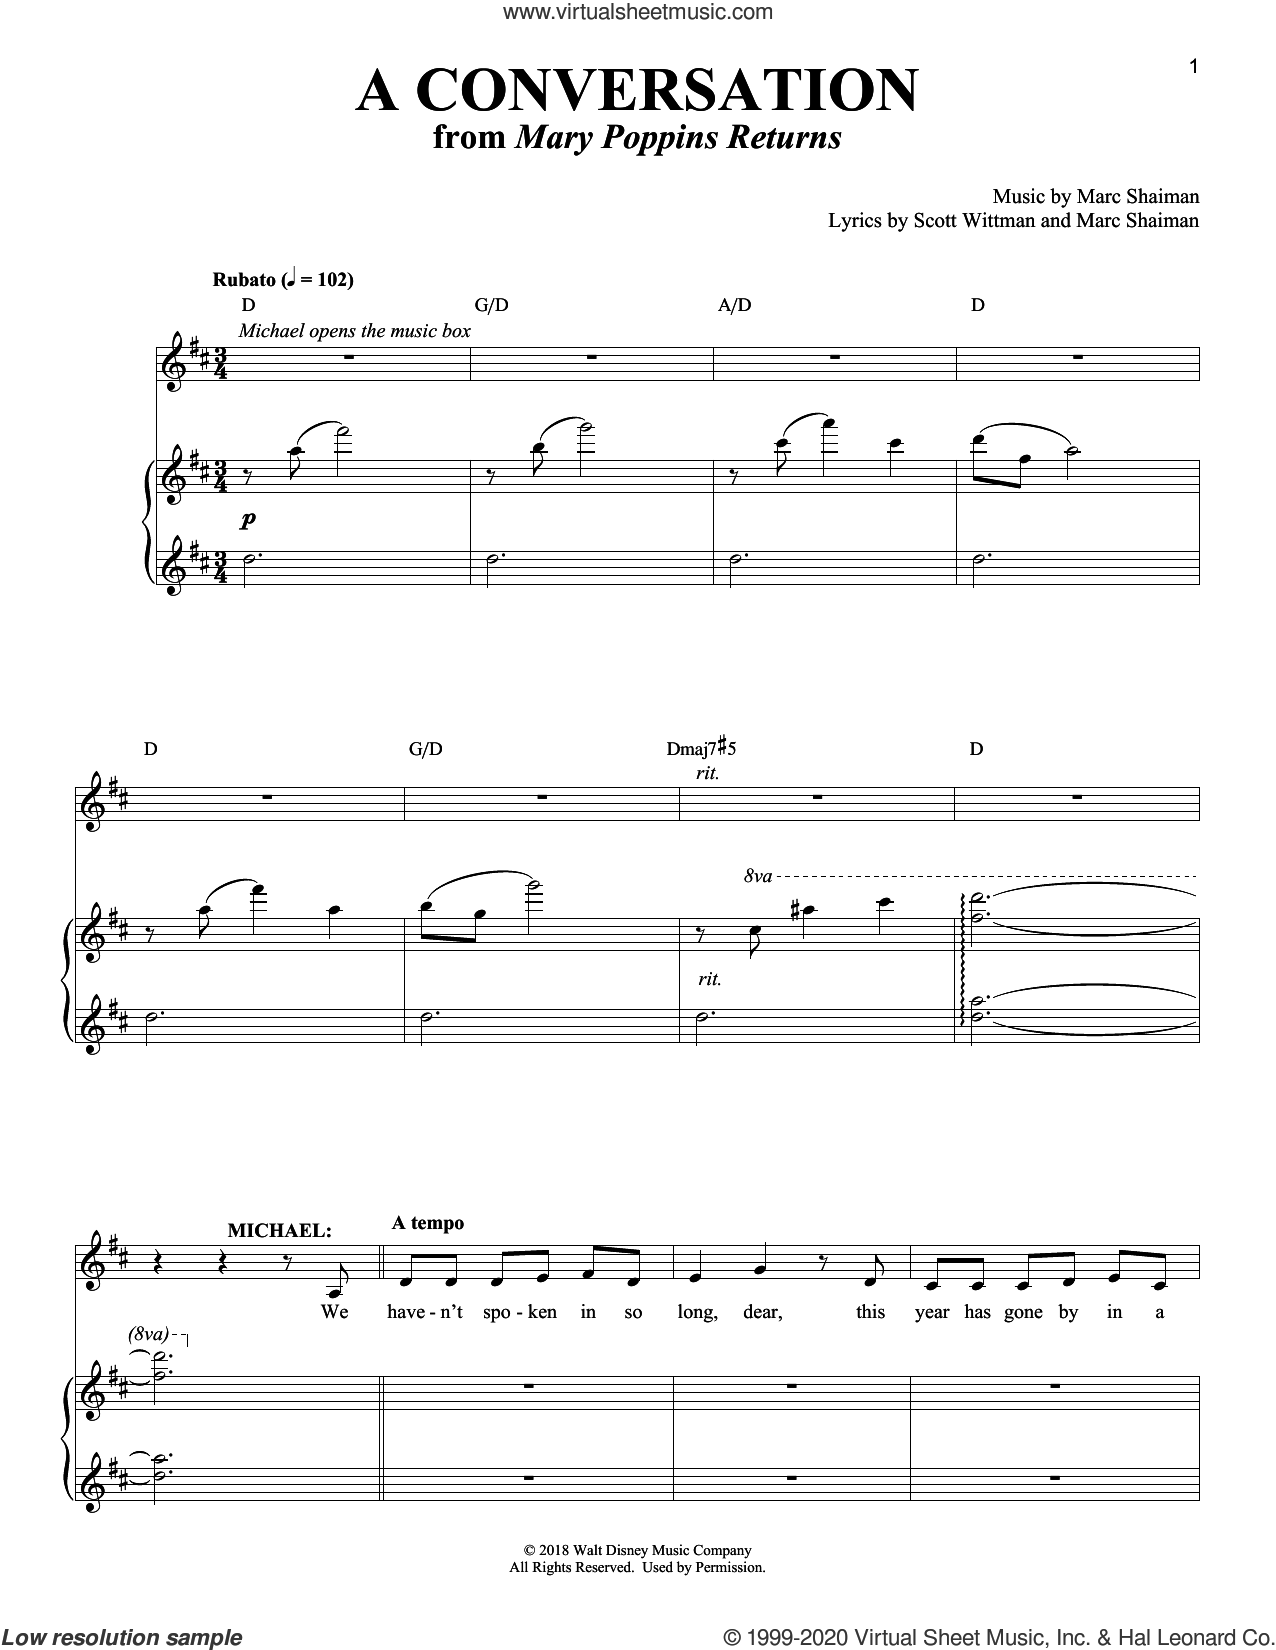 A Conversation (from Mary Poppins Returns) sheet music for voice and piano by Ben Wishaw, Marc Shaiman and Scott Wittman, intermediate skill level